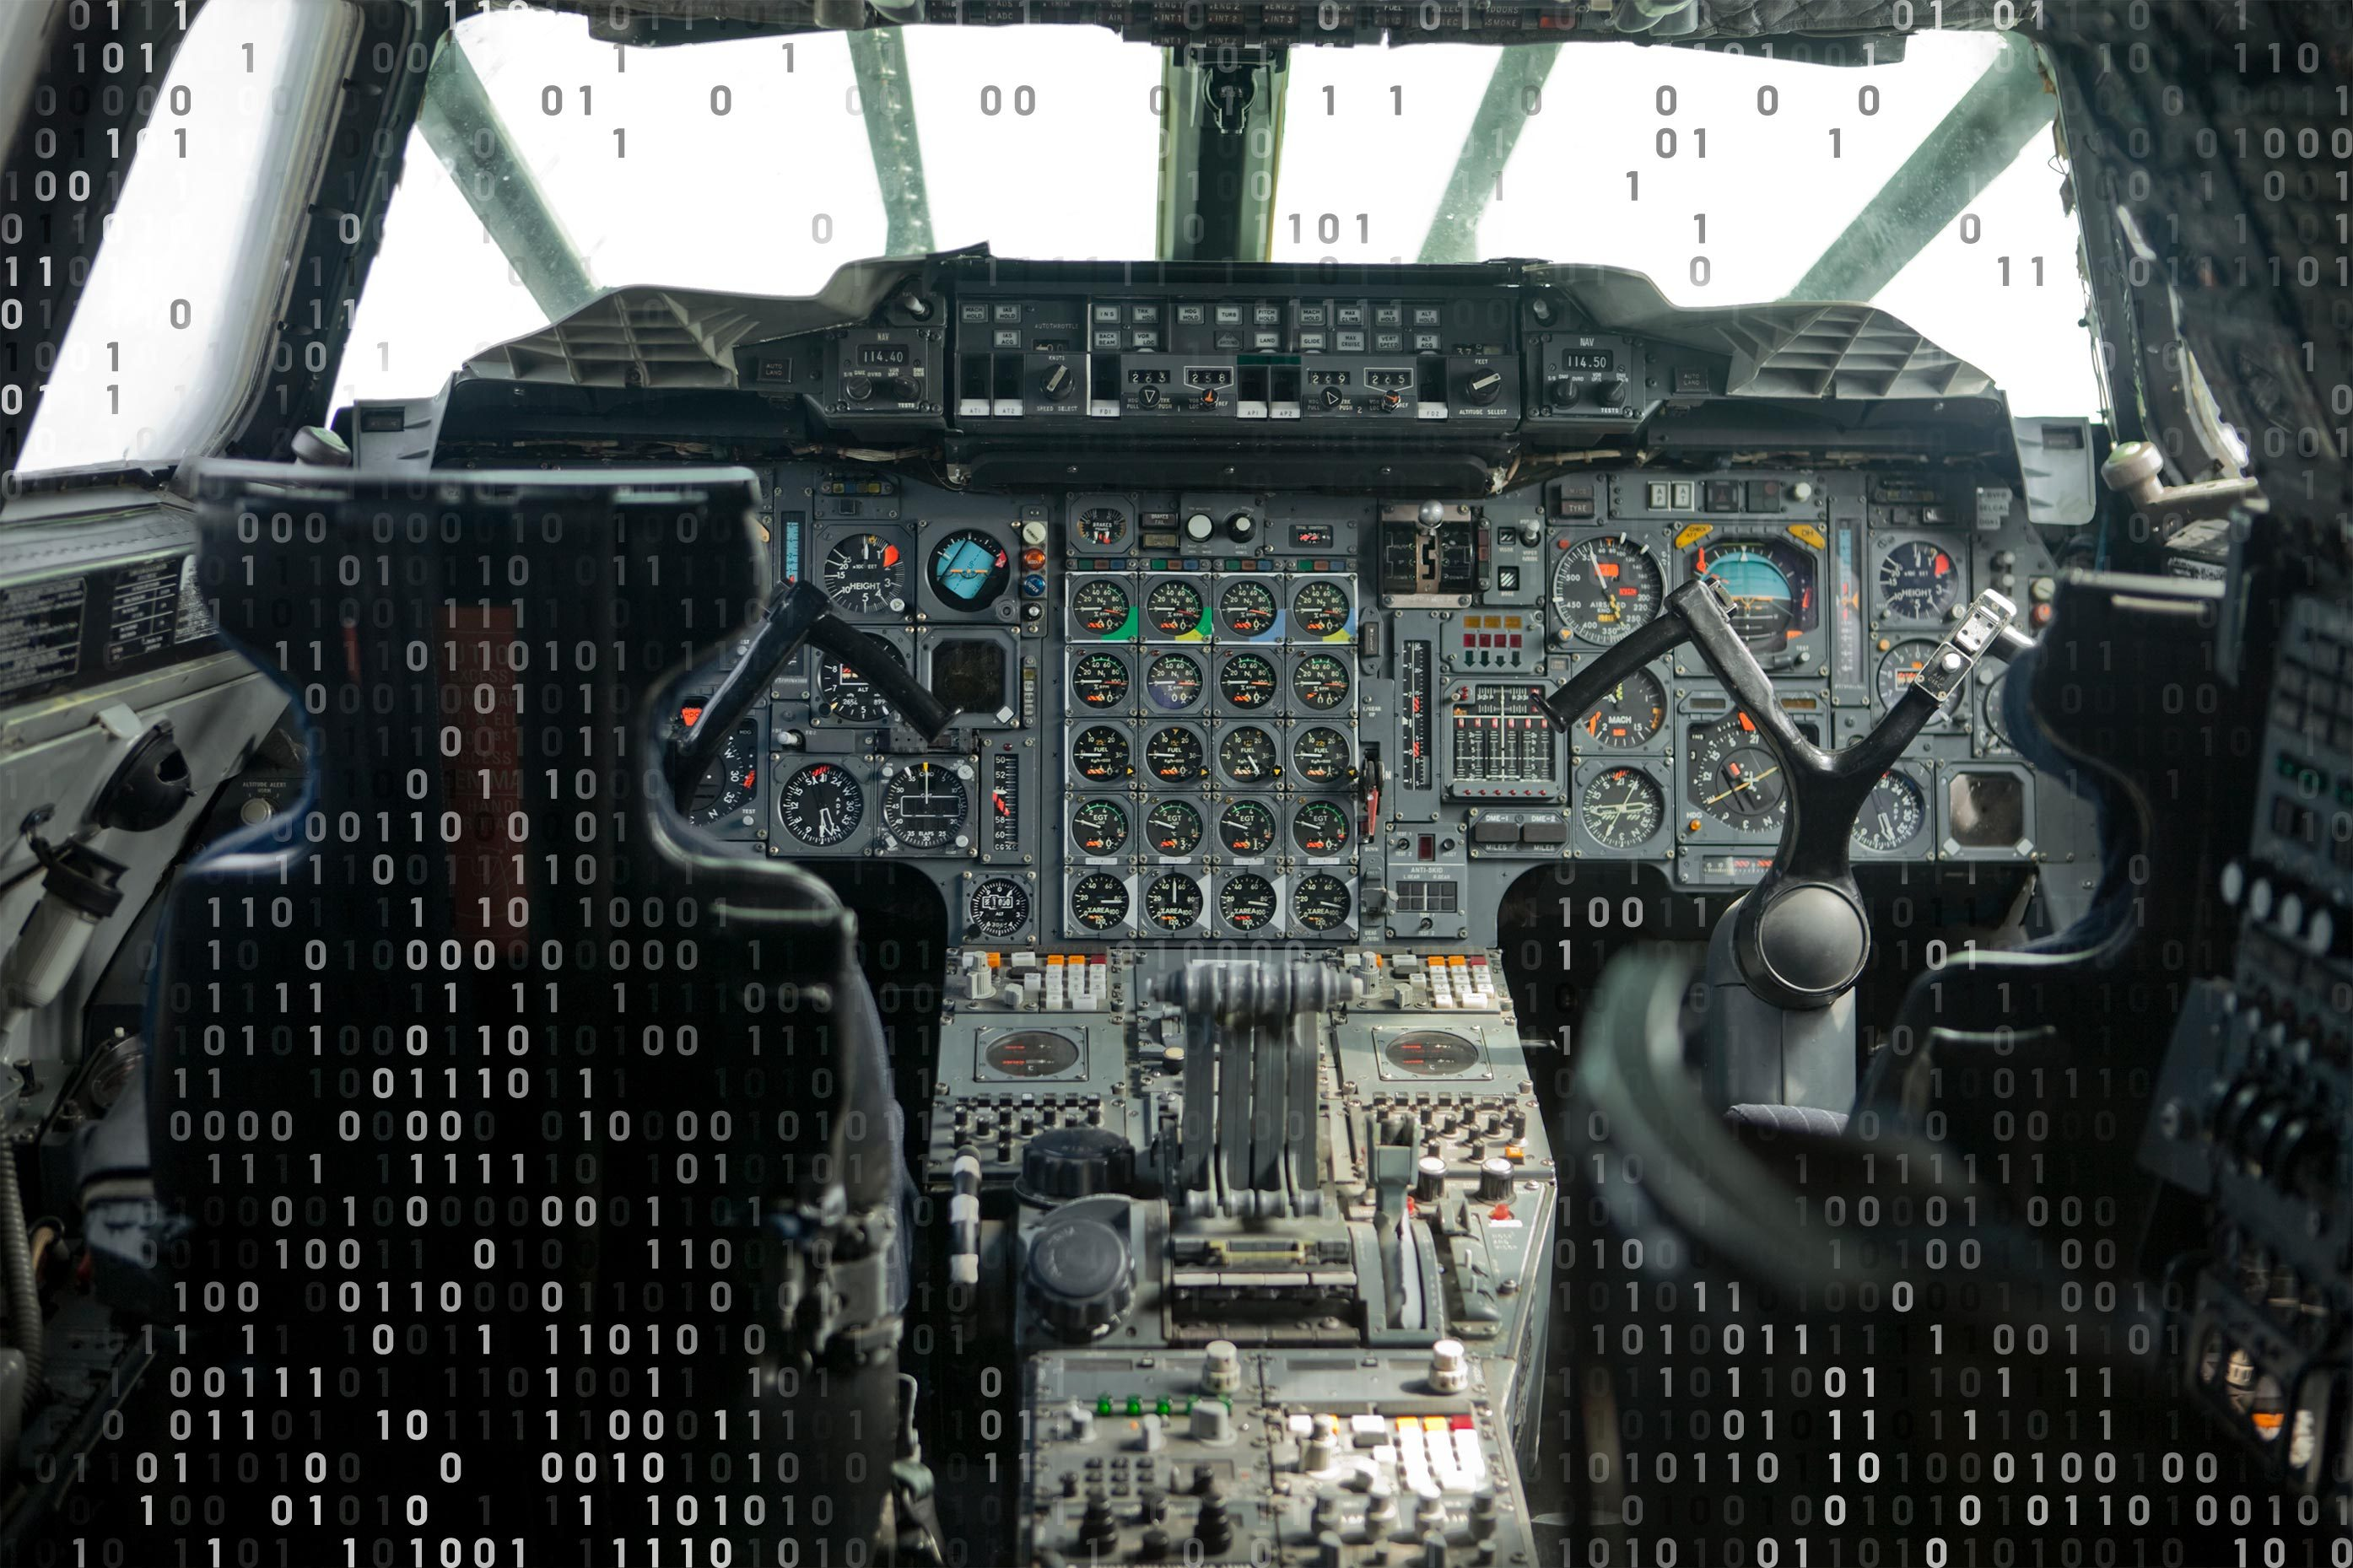 cockpit of the concorde with computer code overlay